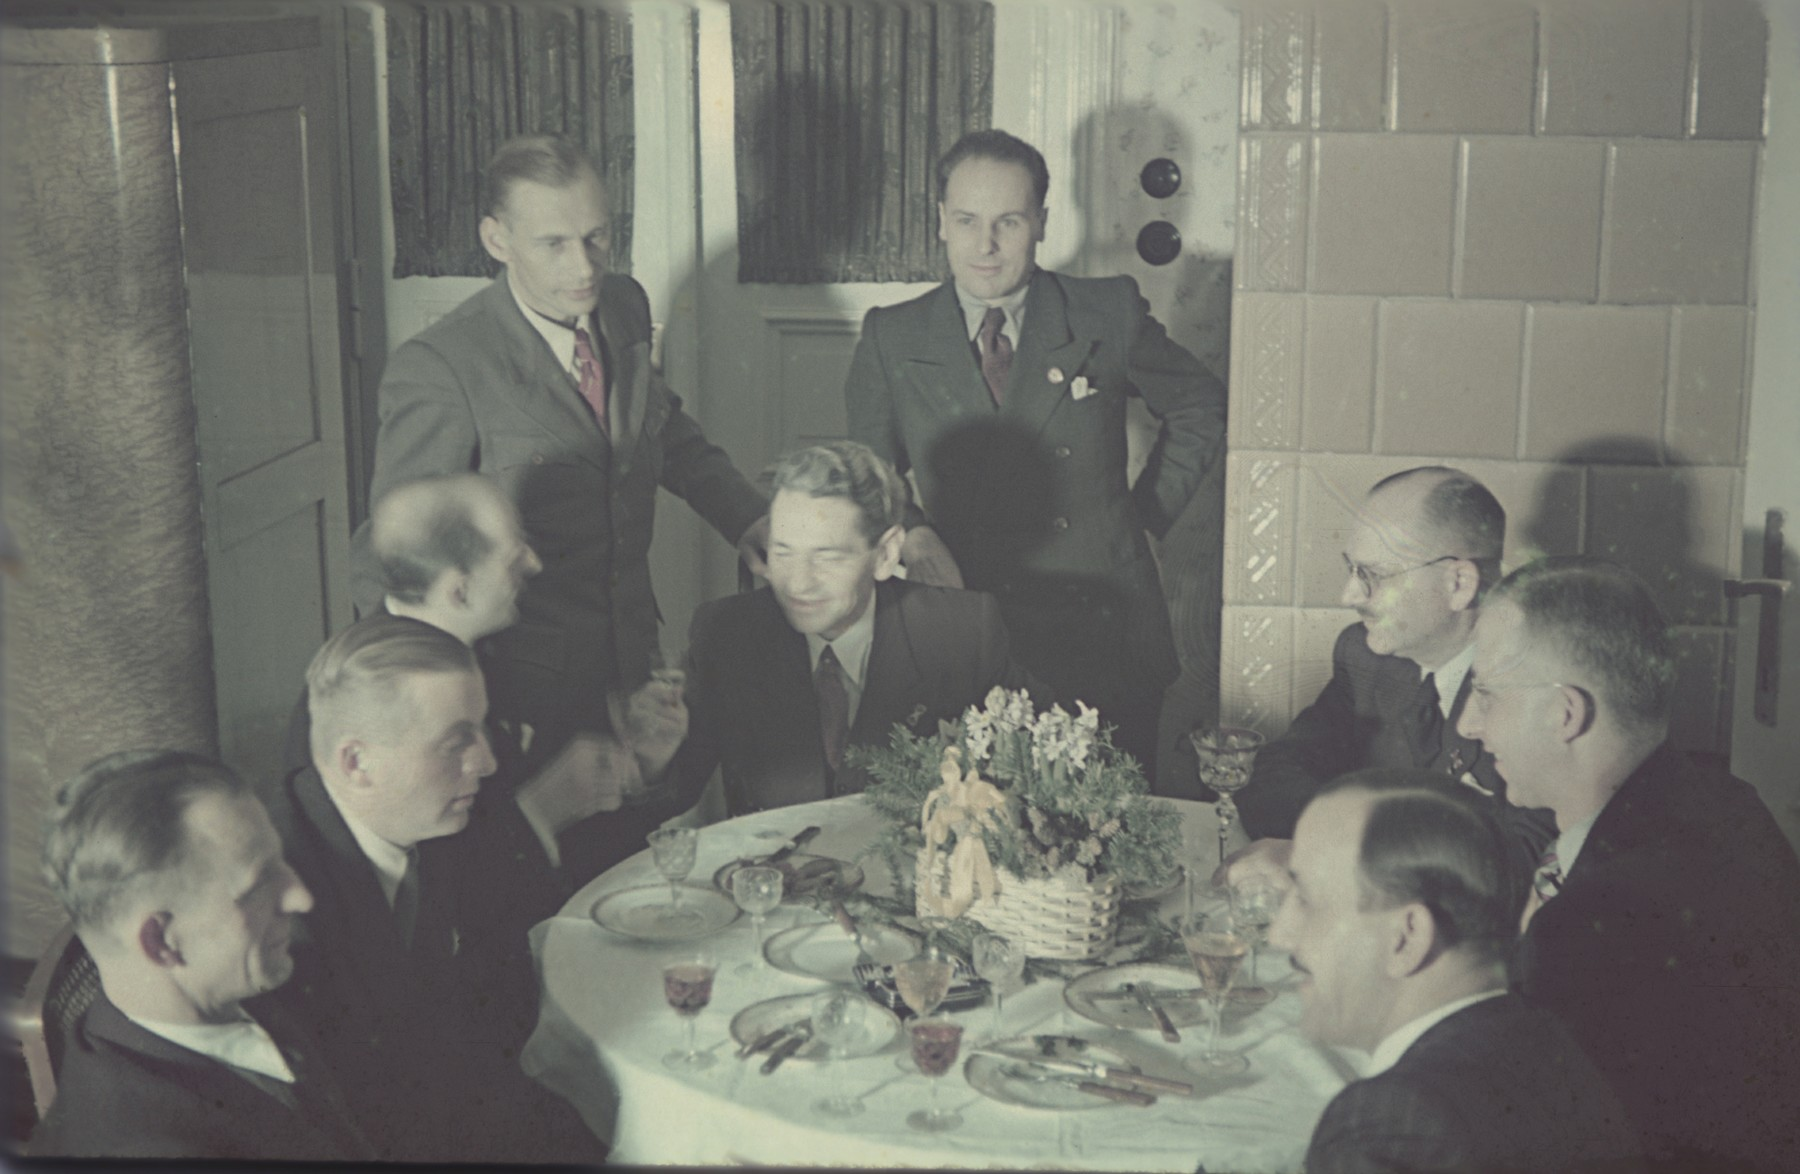 German administrators celebrate at a party in the Lodz ghetto.